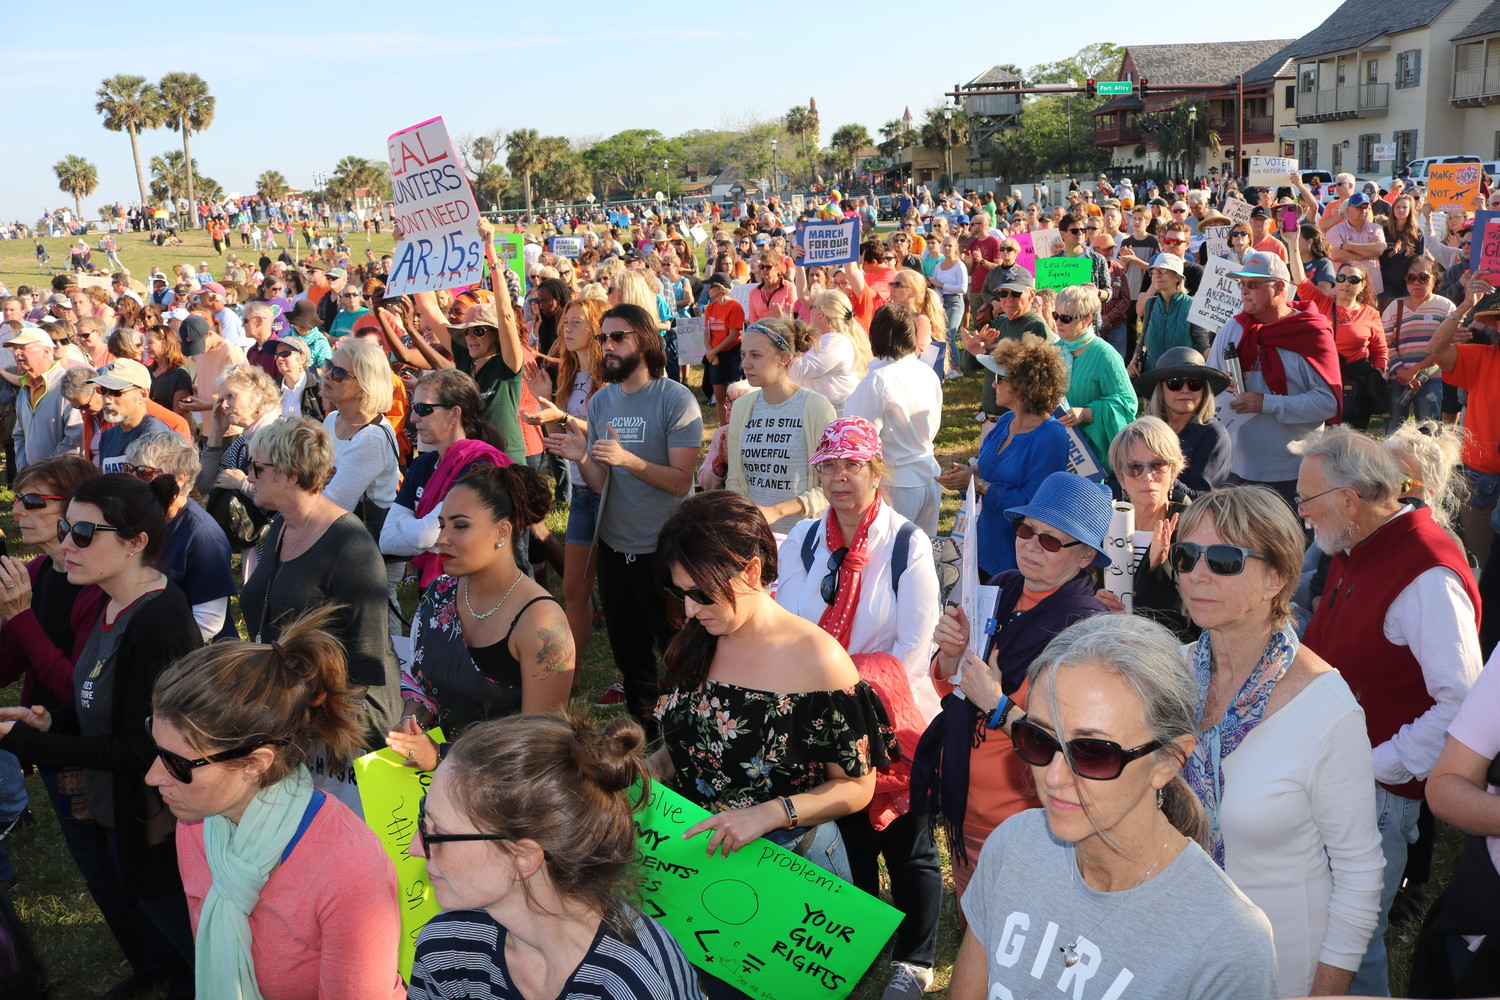 Community members join the March for Our Lives national movement in St. Augustine on Saturday, March 24. The march traveled over the Bridge of Lions and along Avenida Menendez, concluding with a rally adjacent to Castillo de San Marcos.